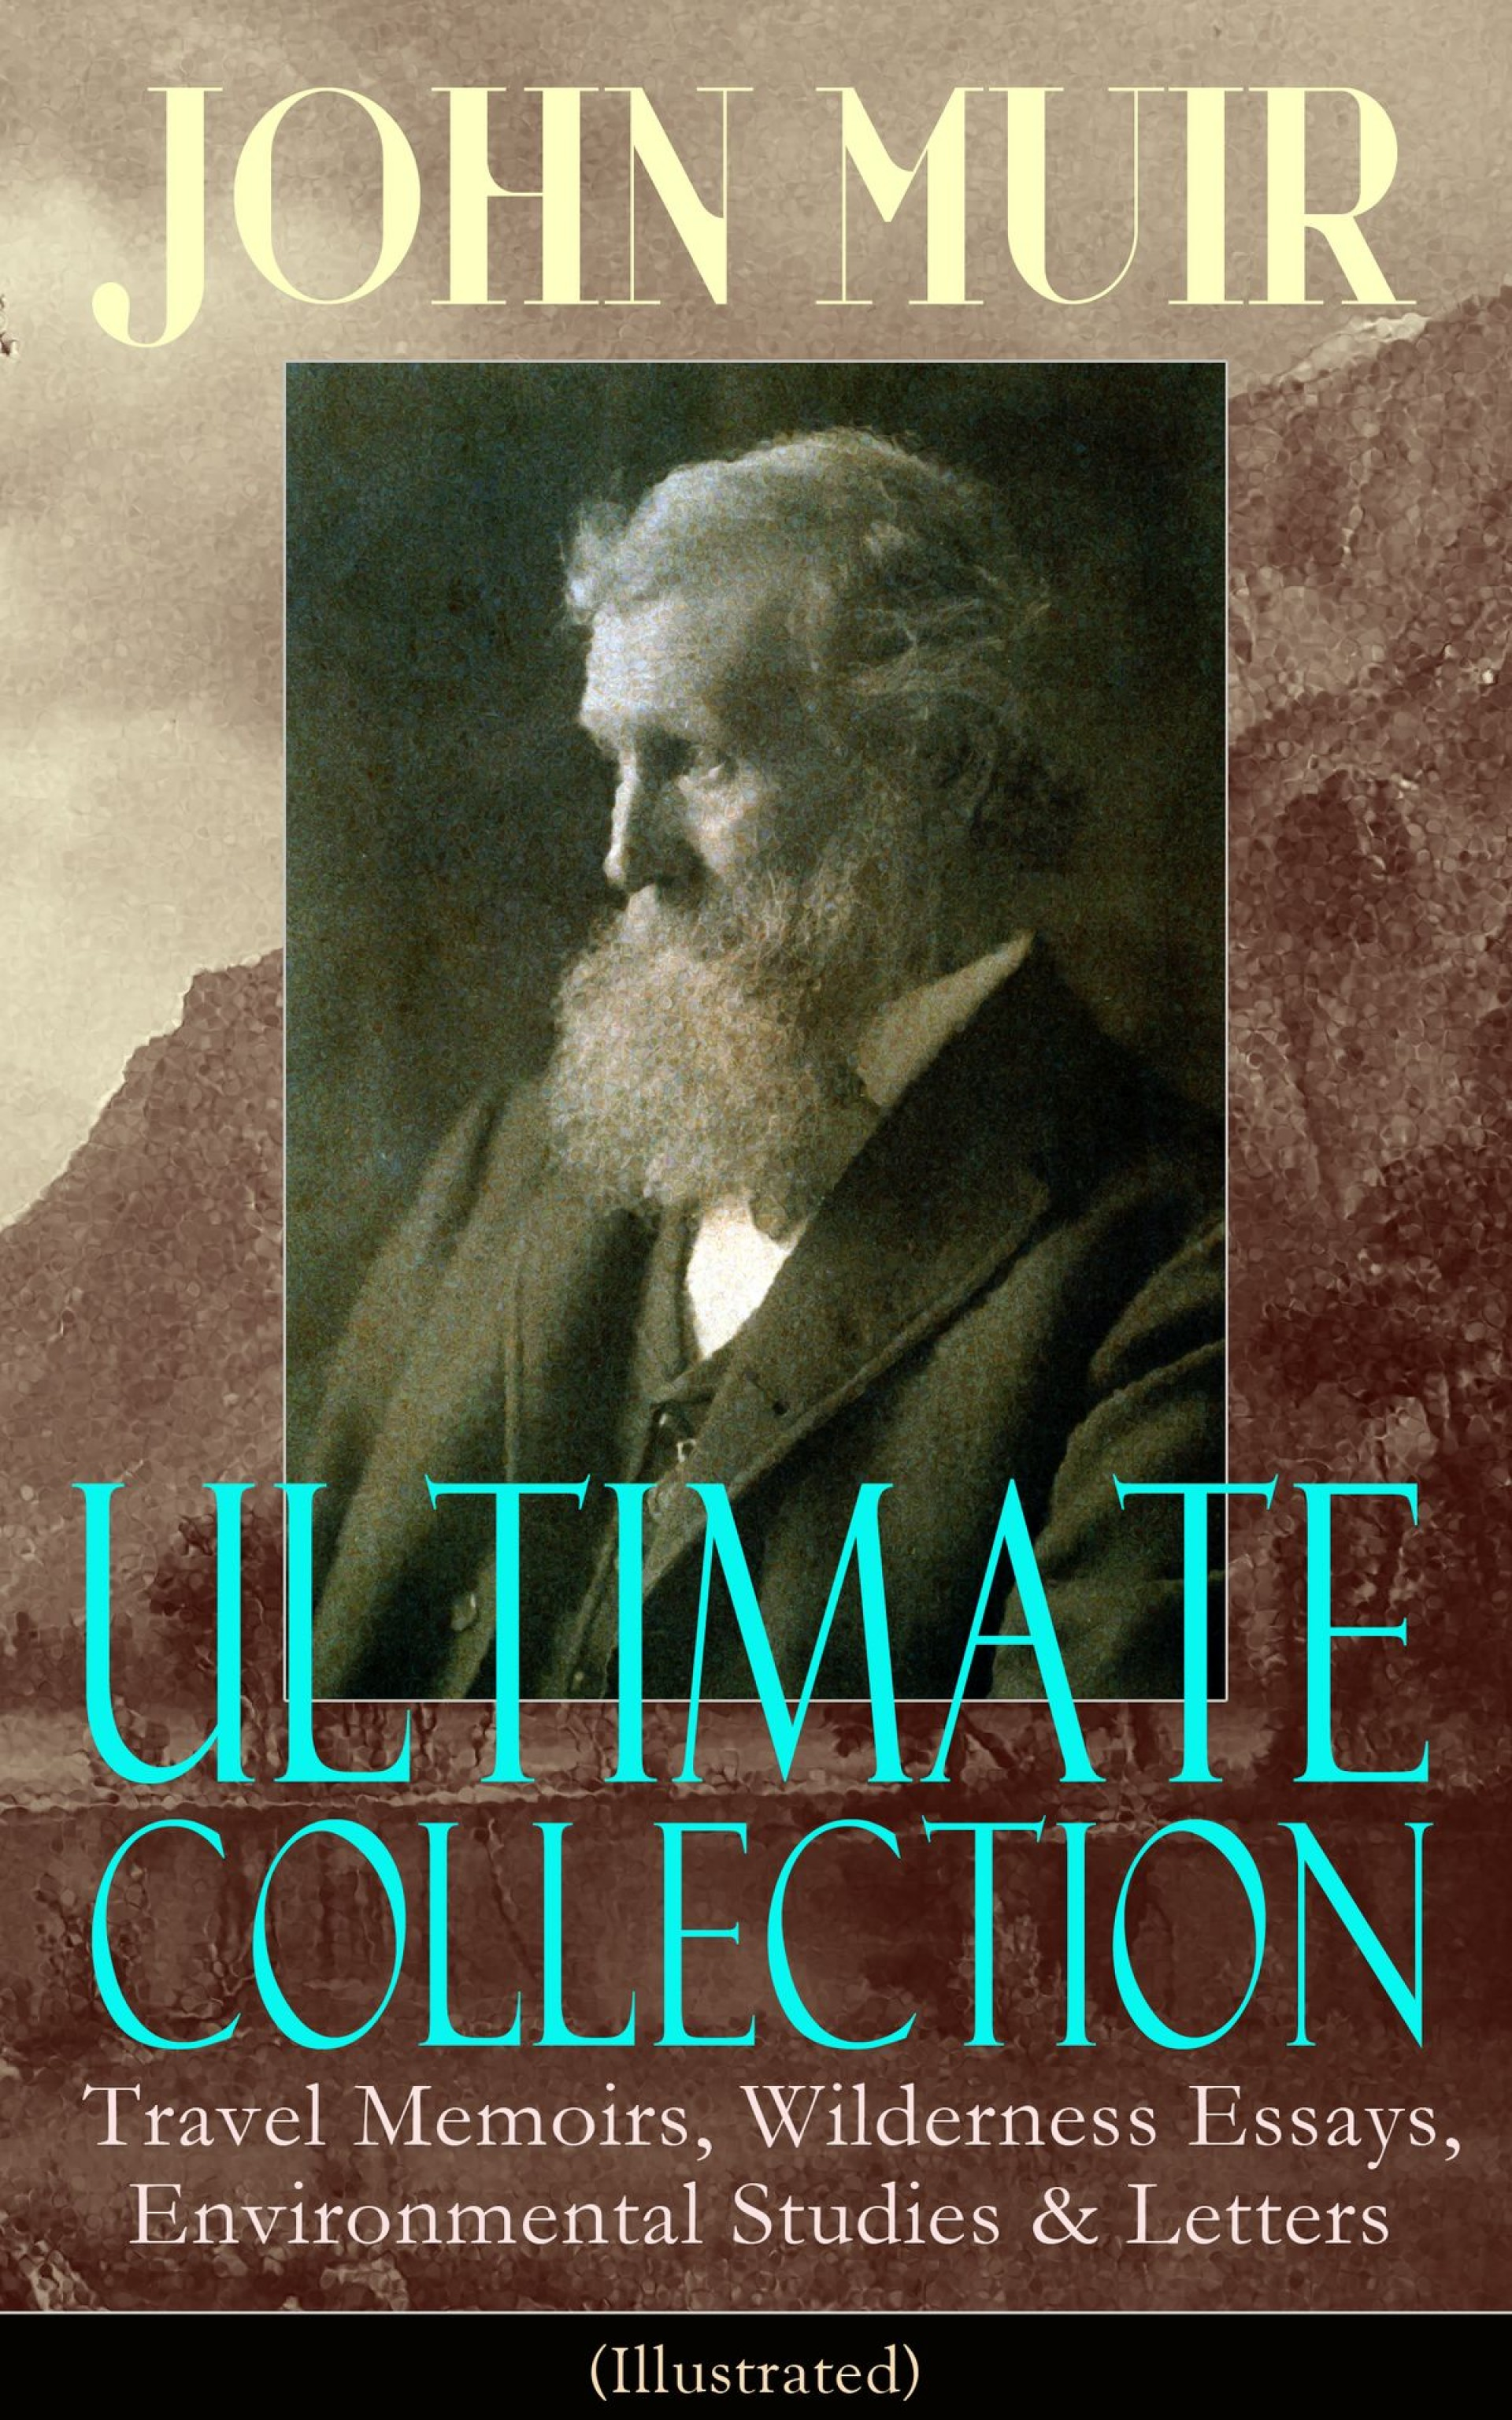 014 Essay Example John Muir Ultimate Collection Travel Memoirs Wilderness Essays Environmental Studies Letters Best Pdf Review 1920